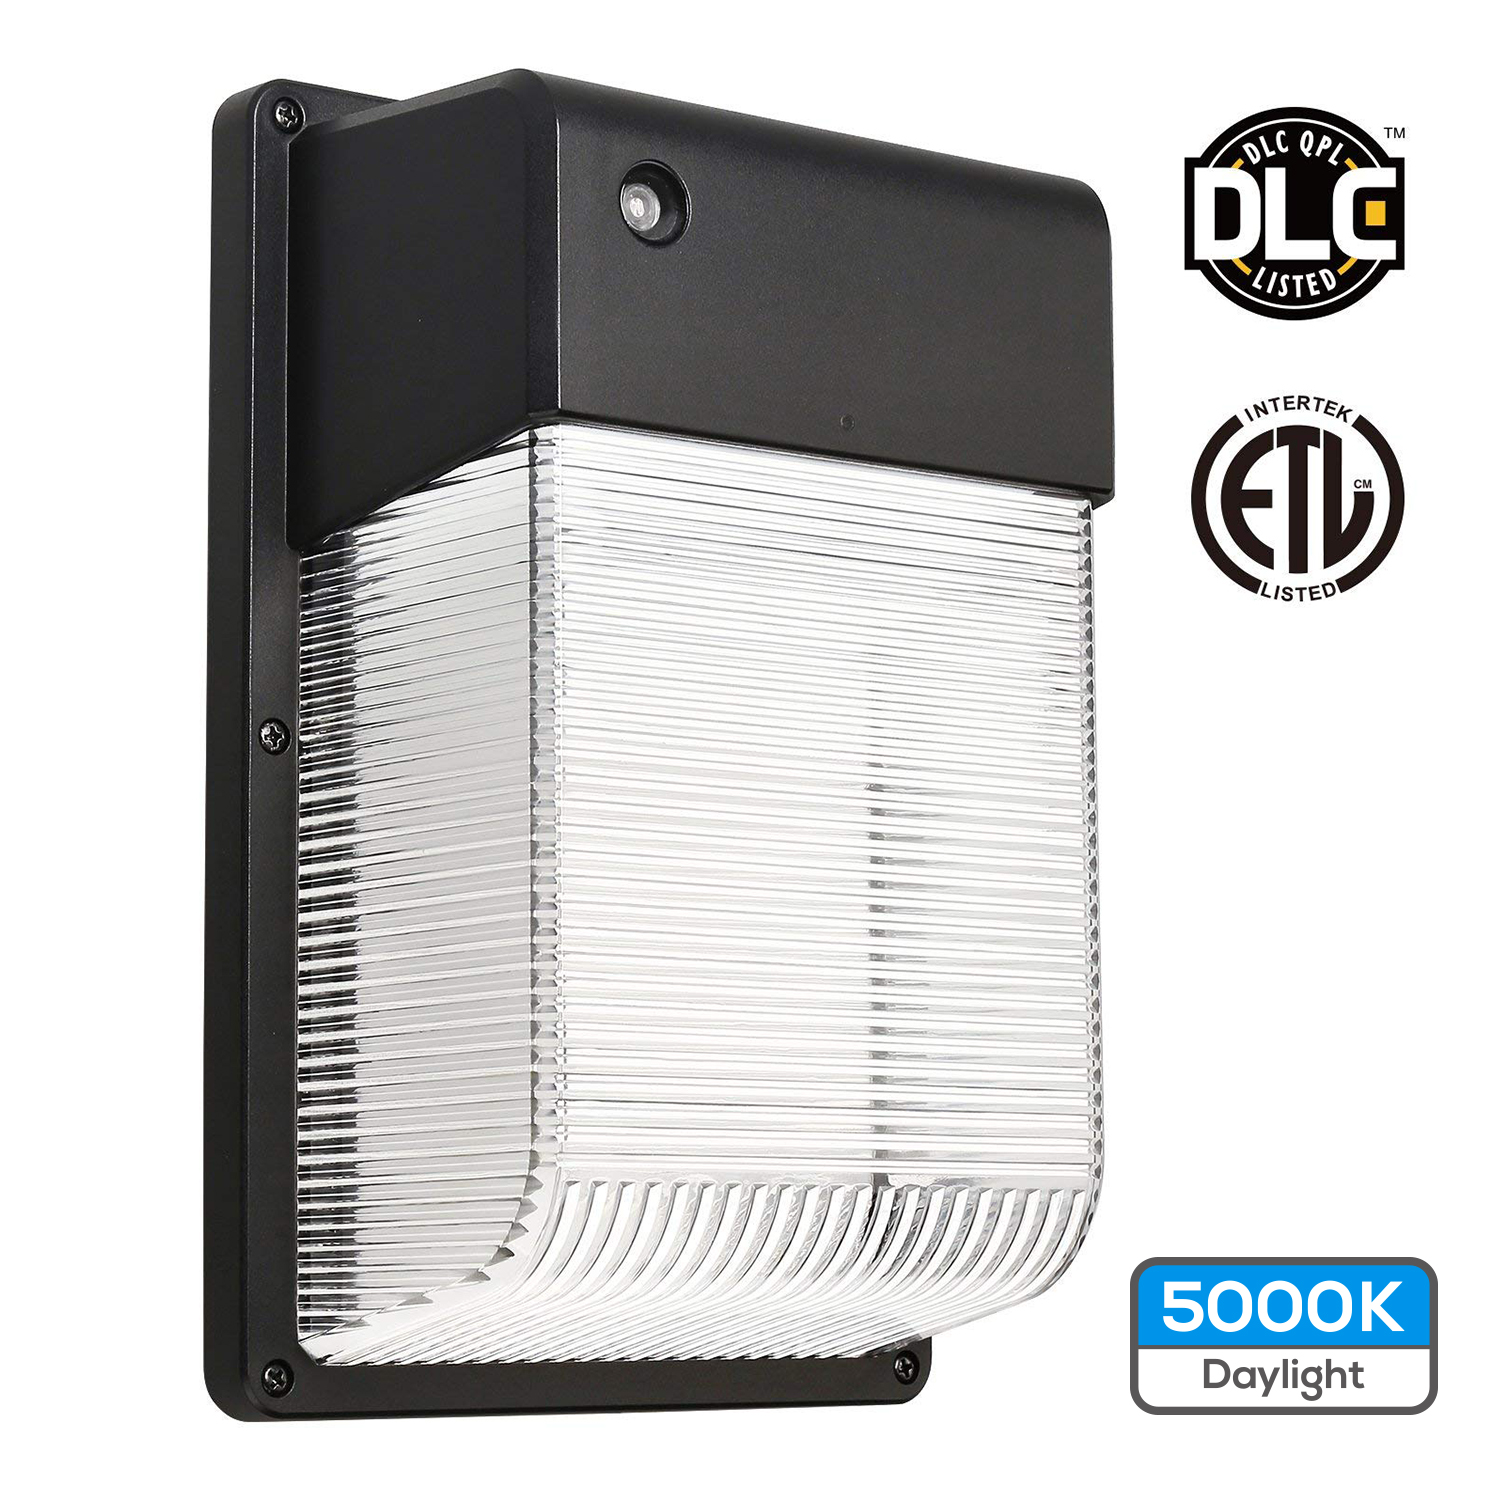 LEONLITE 16W Dusk to Dawn LED Wall Light, LED Lights LED Outdoor Lamp Waterproof by